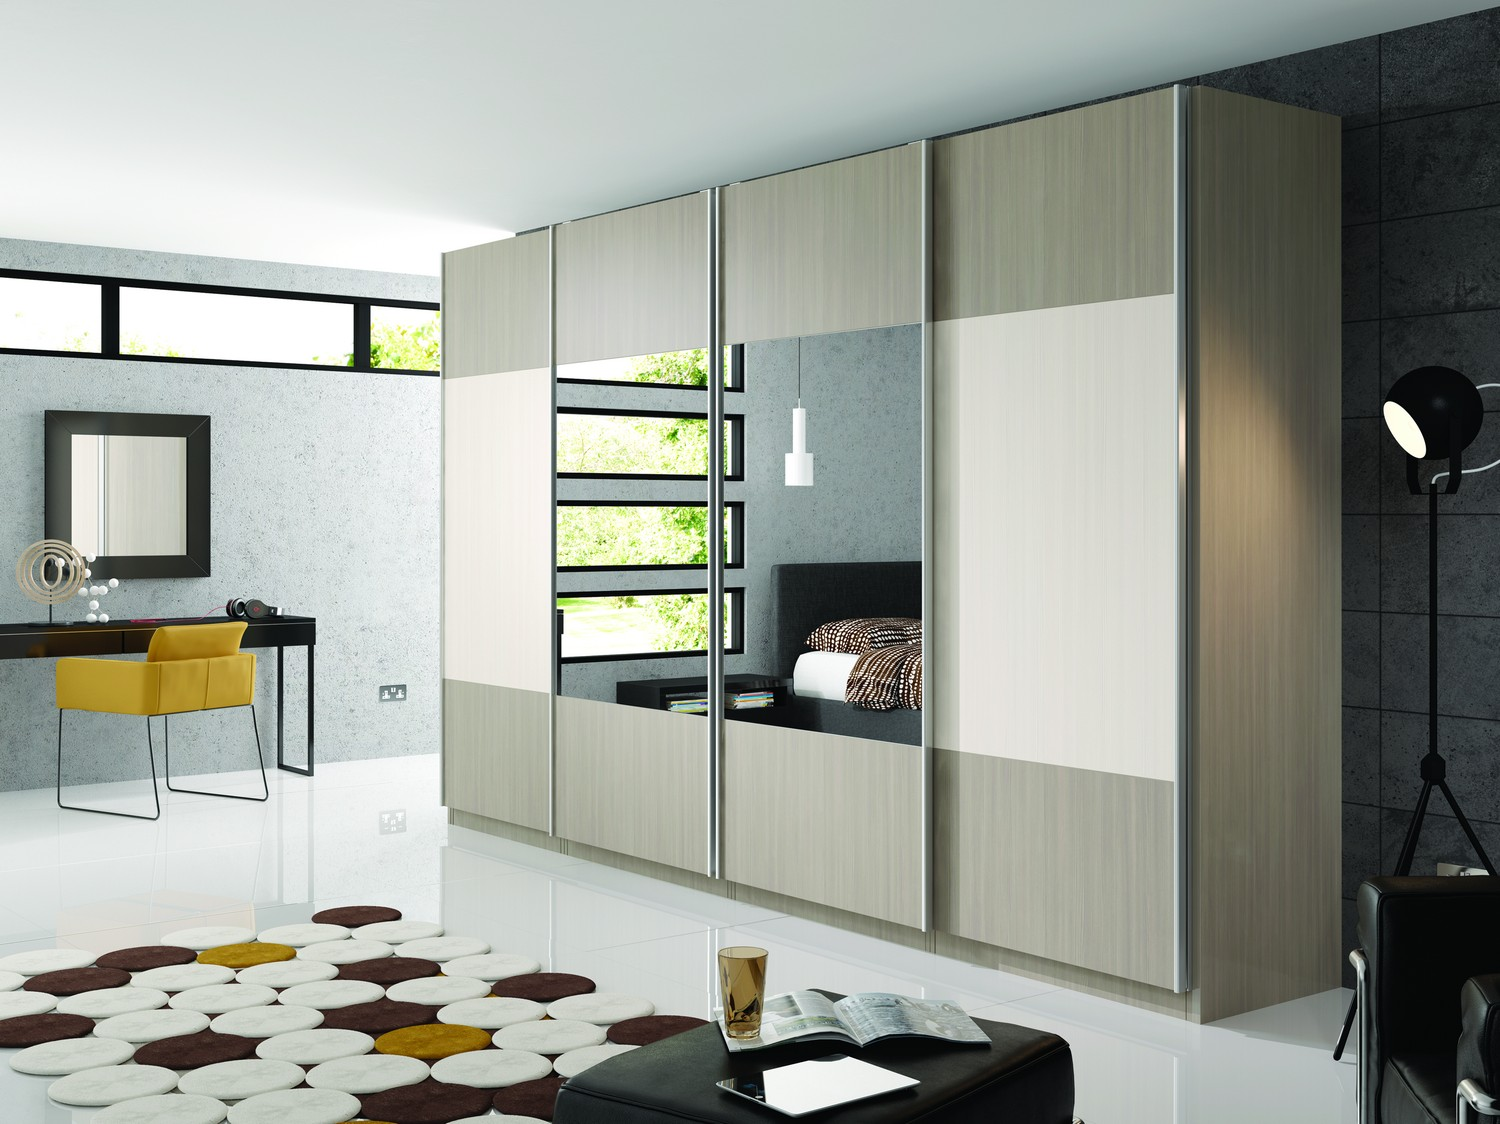 Large freestanding sliding door system with dual style doors including dual mirrored doors. This wardrobe system was designed for a new build property in Ormskirk.